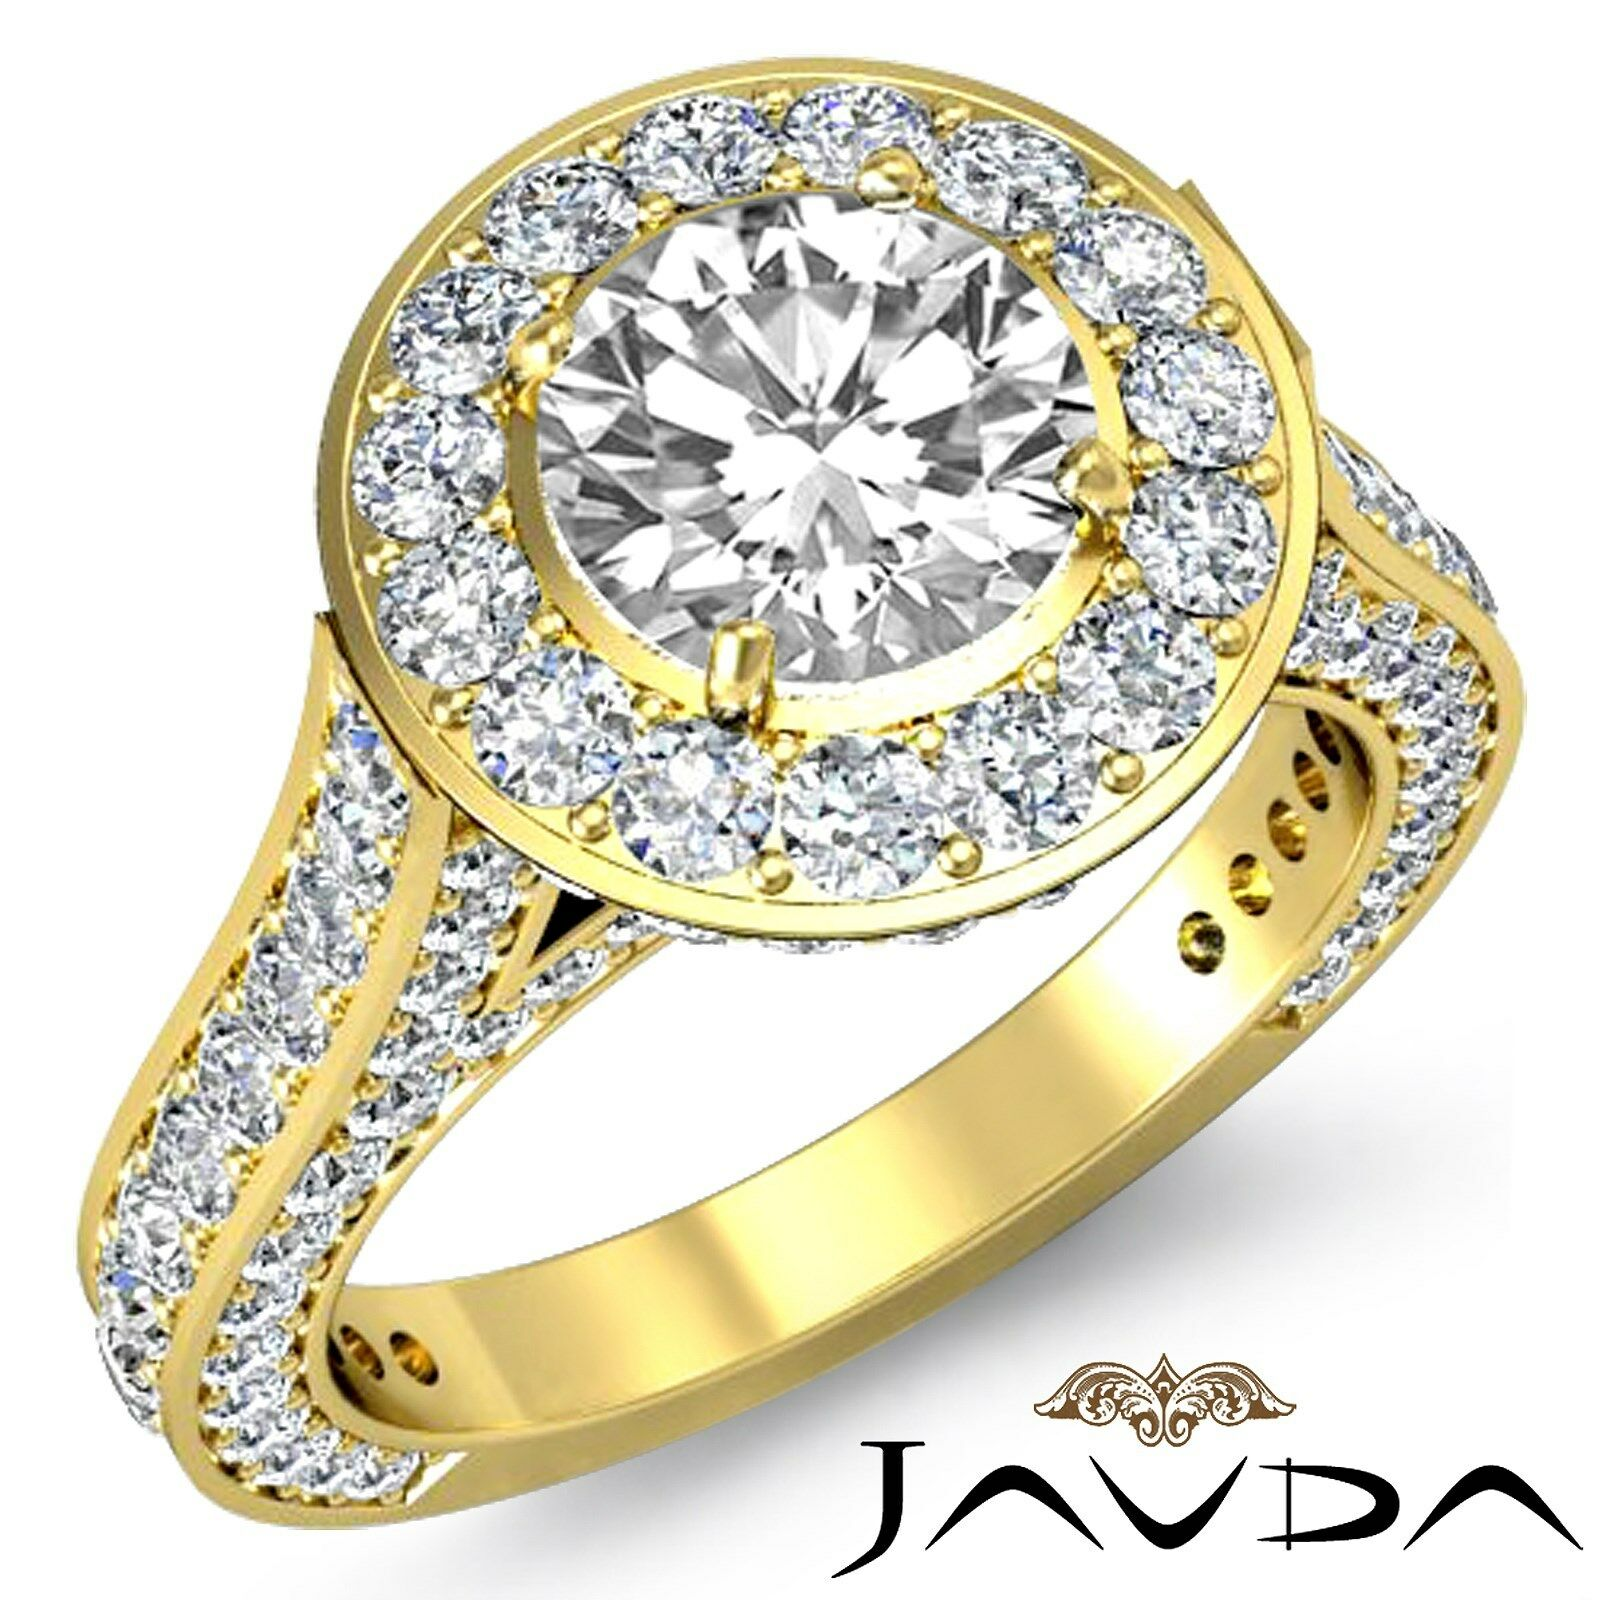 Classic 4 Prong Circa Halo Round Diamond Engagement Wedding Ring GIA I SI1 3.6Ct